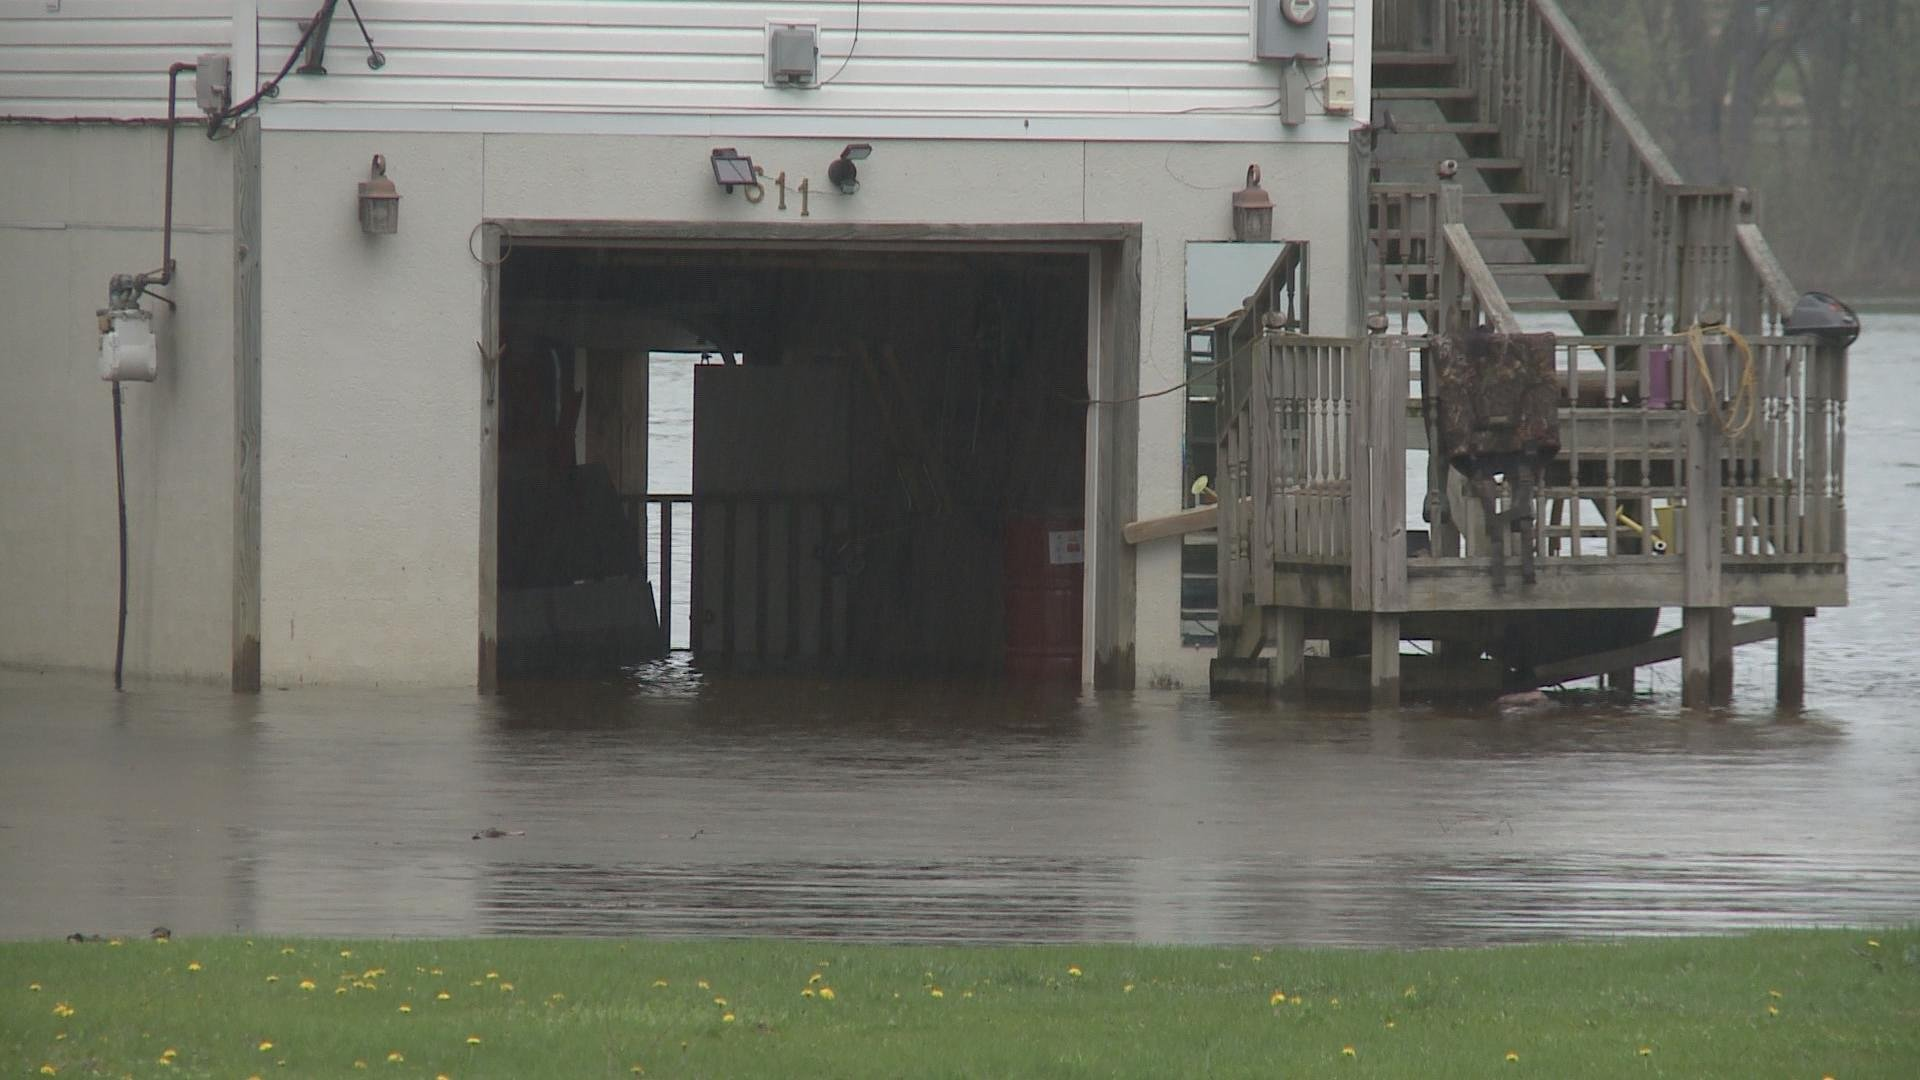 Minor flooding expected as Mississippi River rises